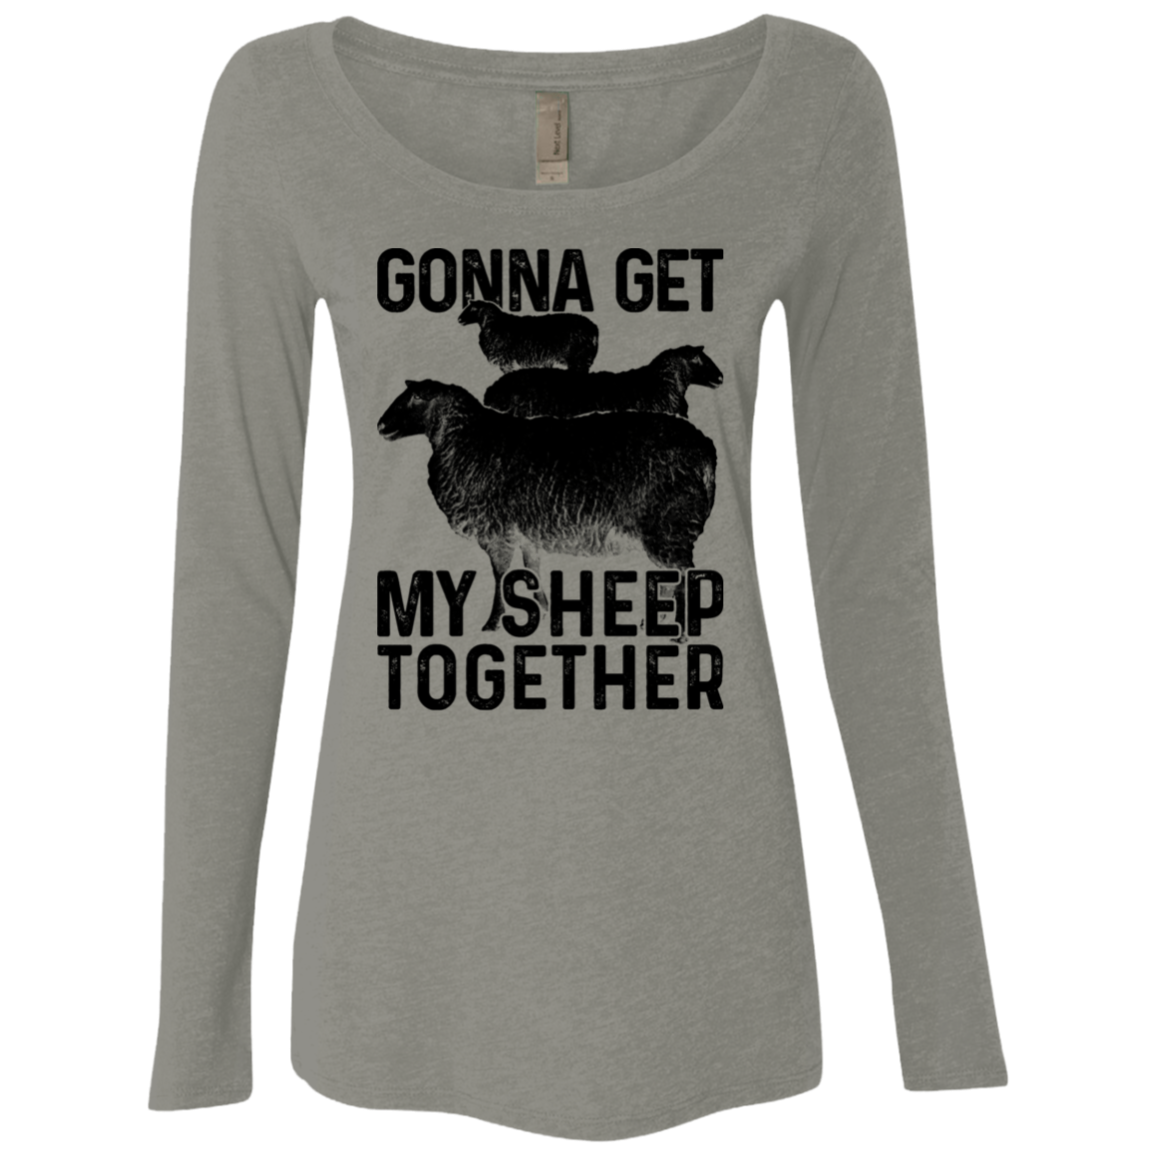 Gonna Get My Sheep Together Women's Long Sleeve Tee